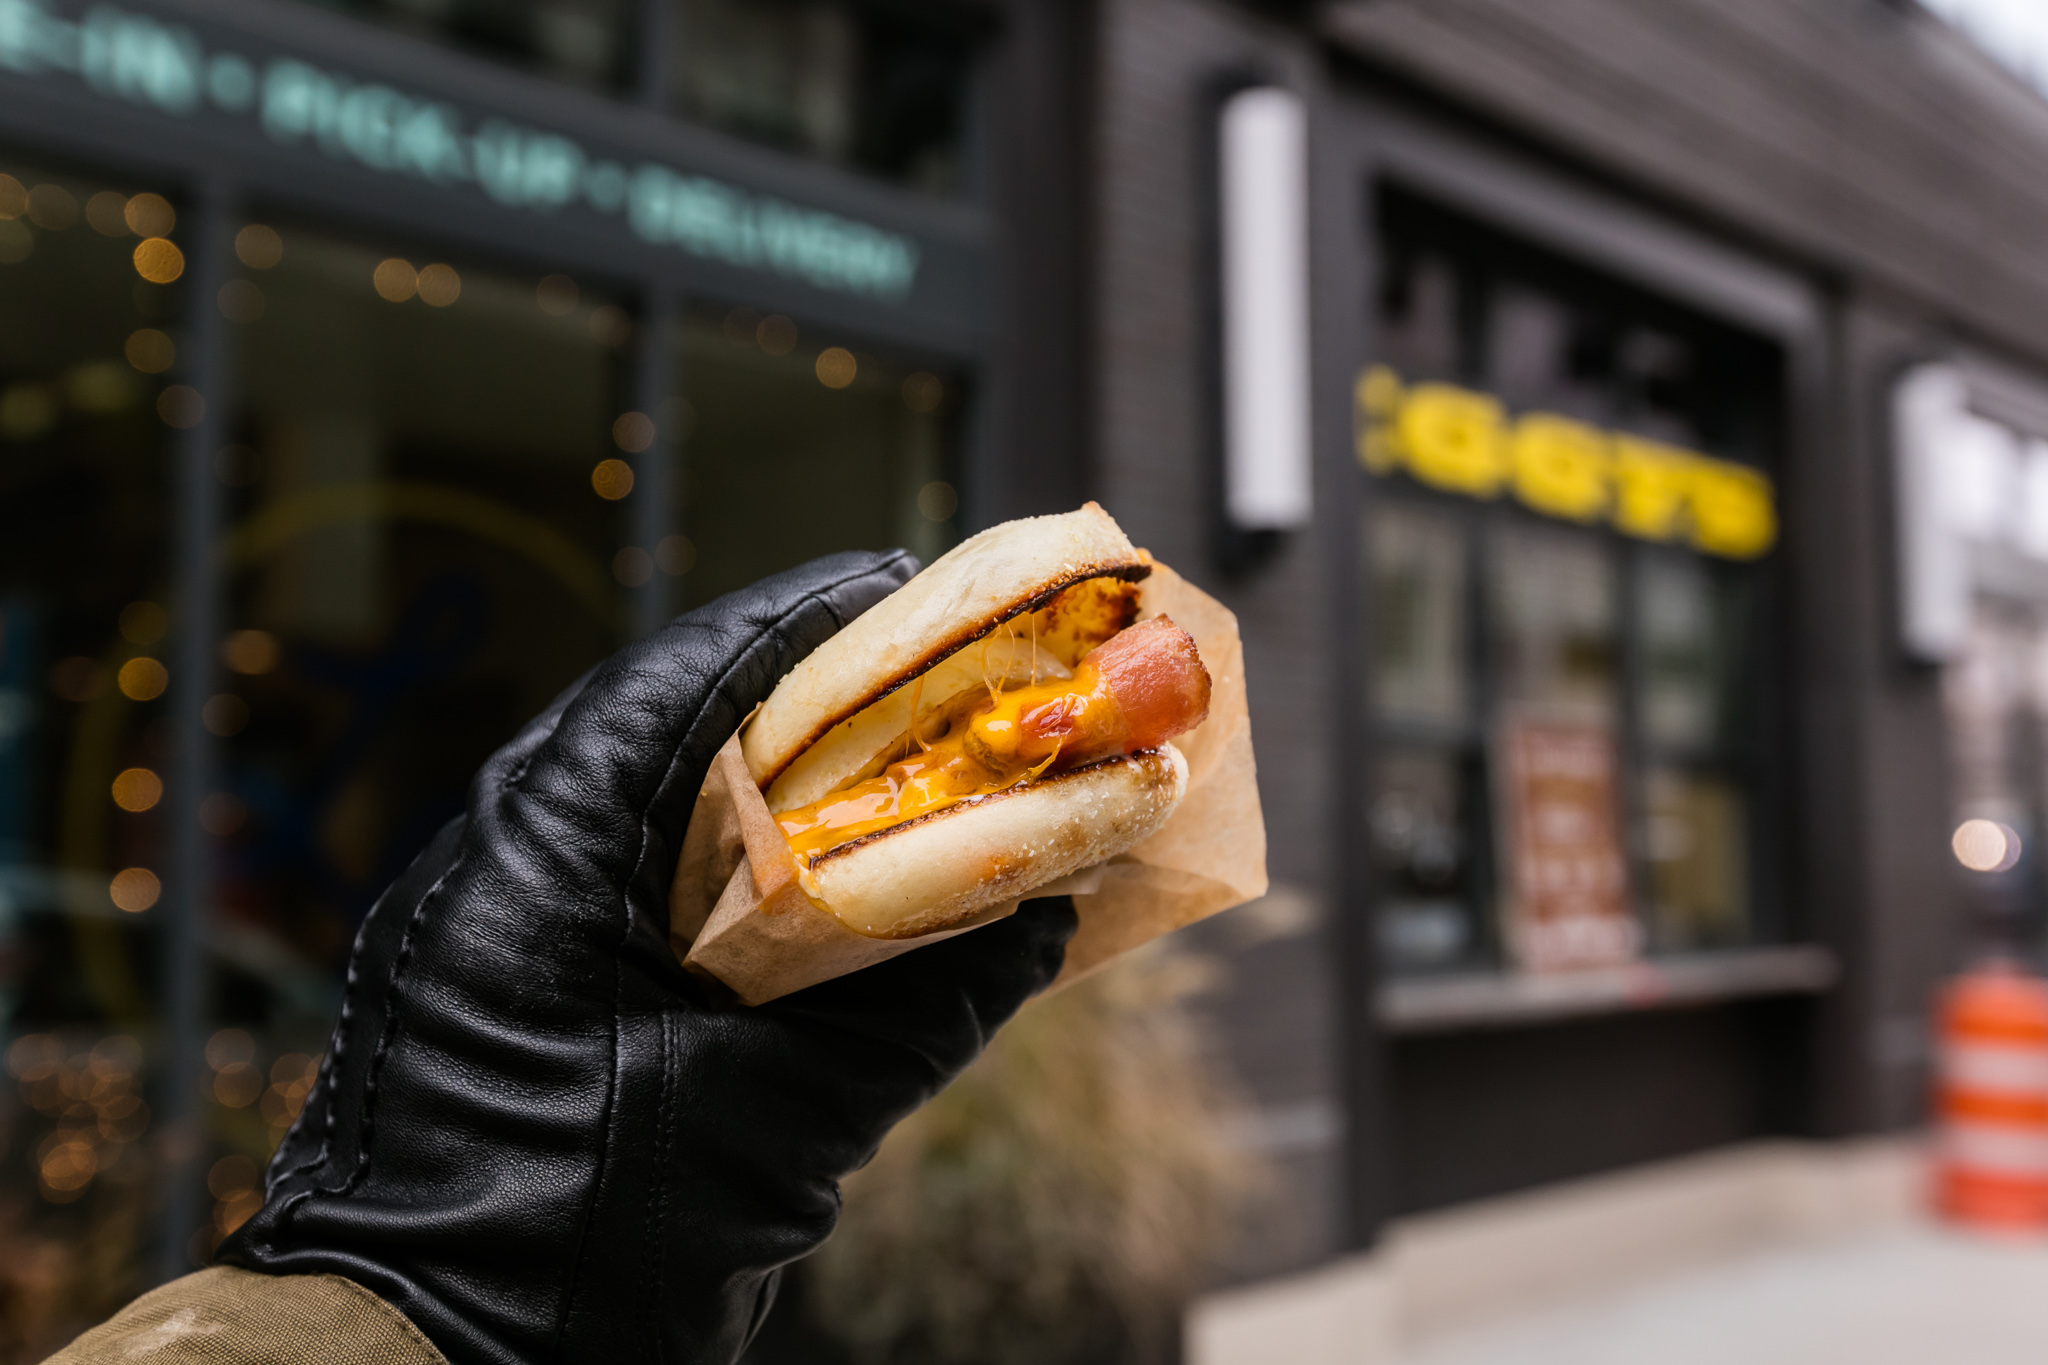 An egg, ham, and cheese breakfast sandwich held in a black-gloved hand.